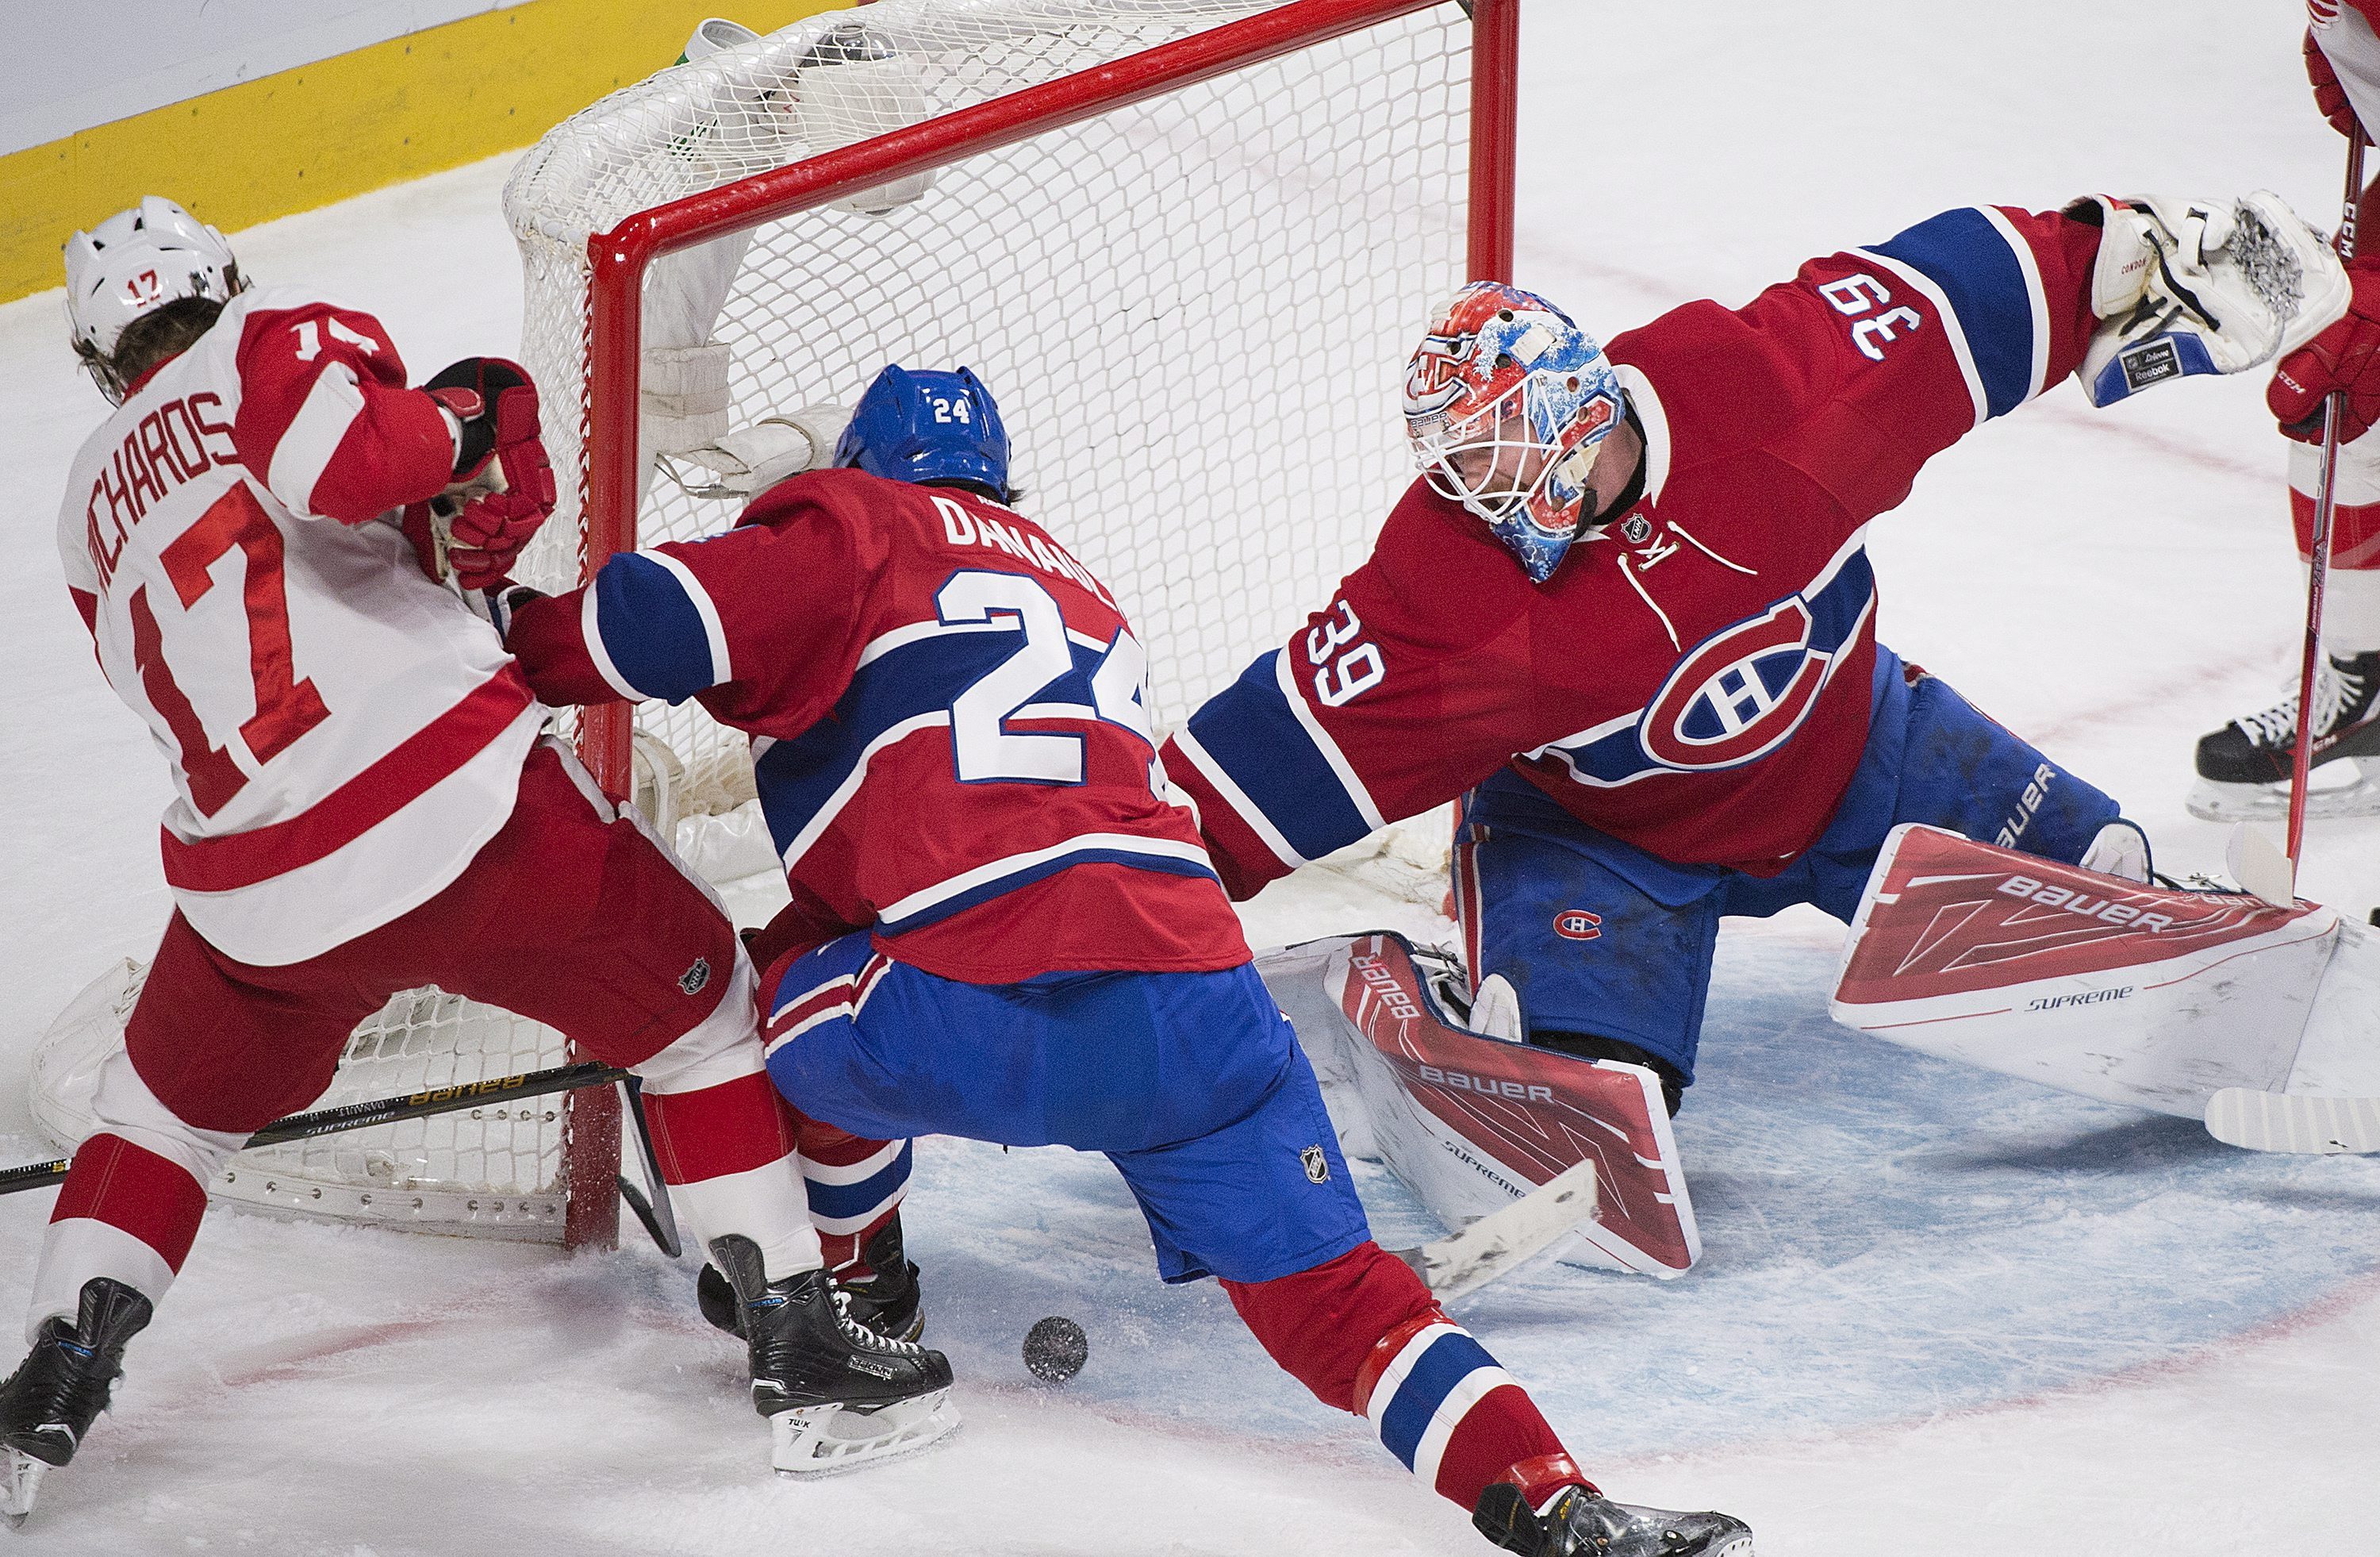 Montreal Canadiens goaltender Mike Condon makes a save against Detroit Red Wings' Brad Richards as Canadiens' Phillip Danault defends during the second period of an NHL hockey game, Tuesday, March 29, 2016 in Montreal. (Graham Hughes/The Canadian Press vi